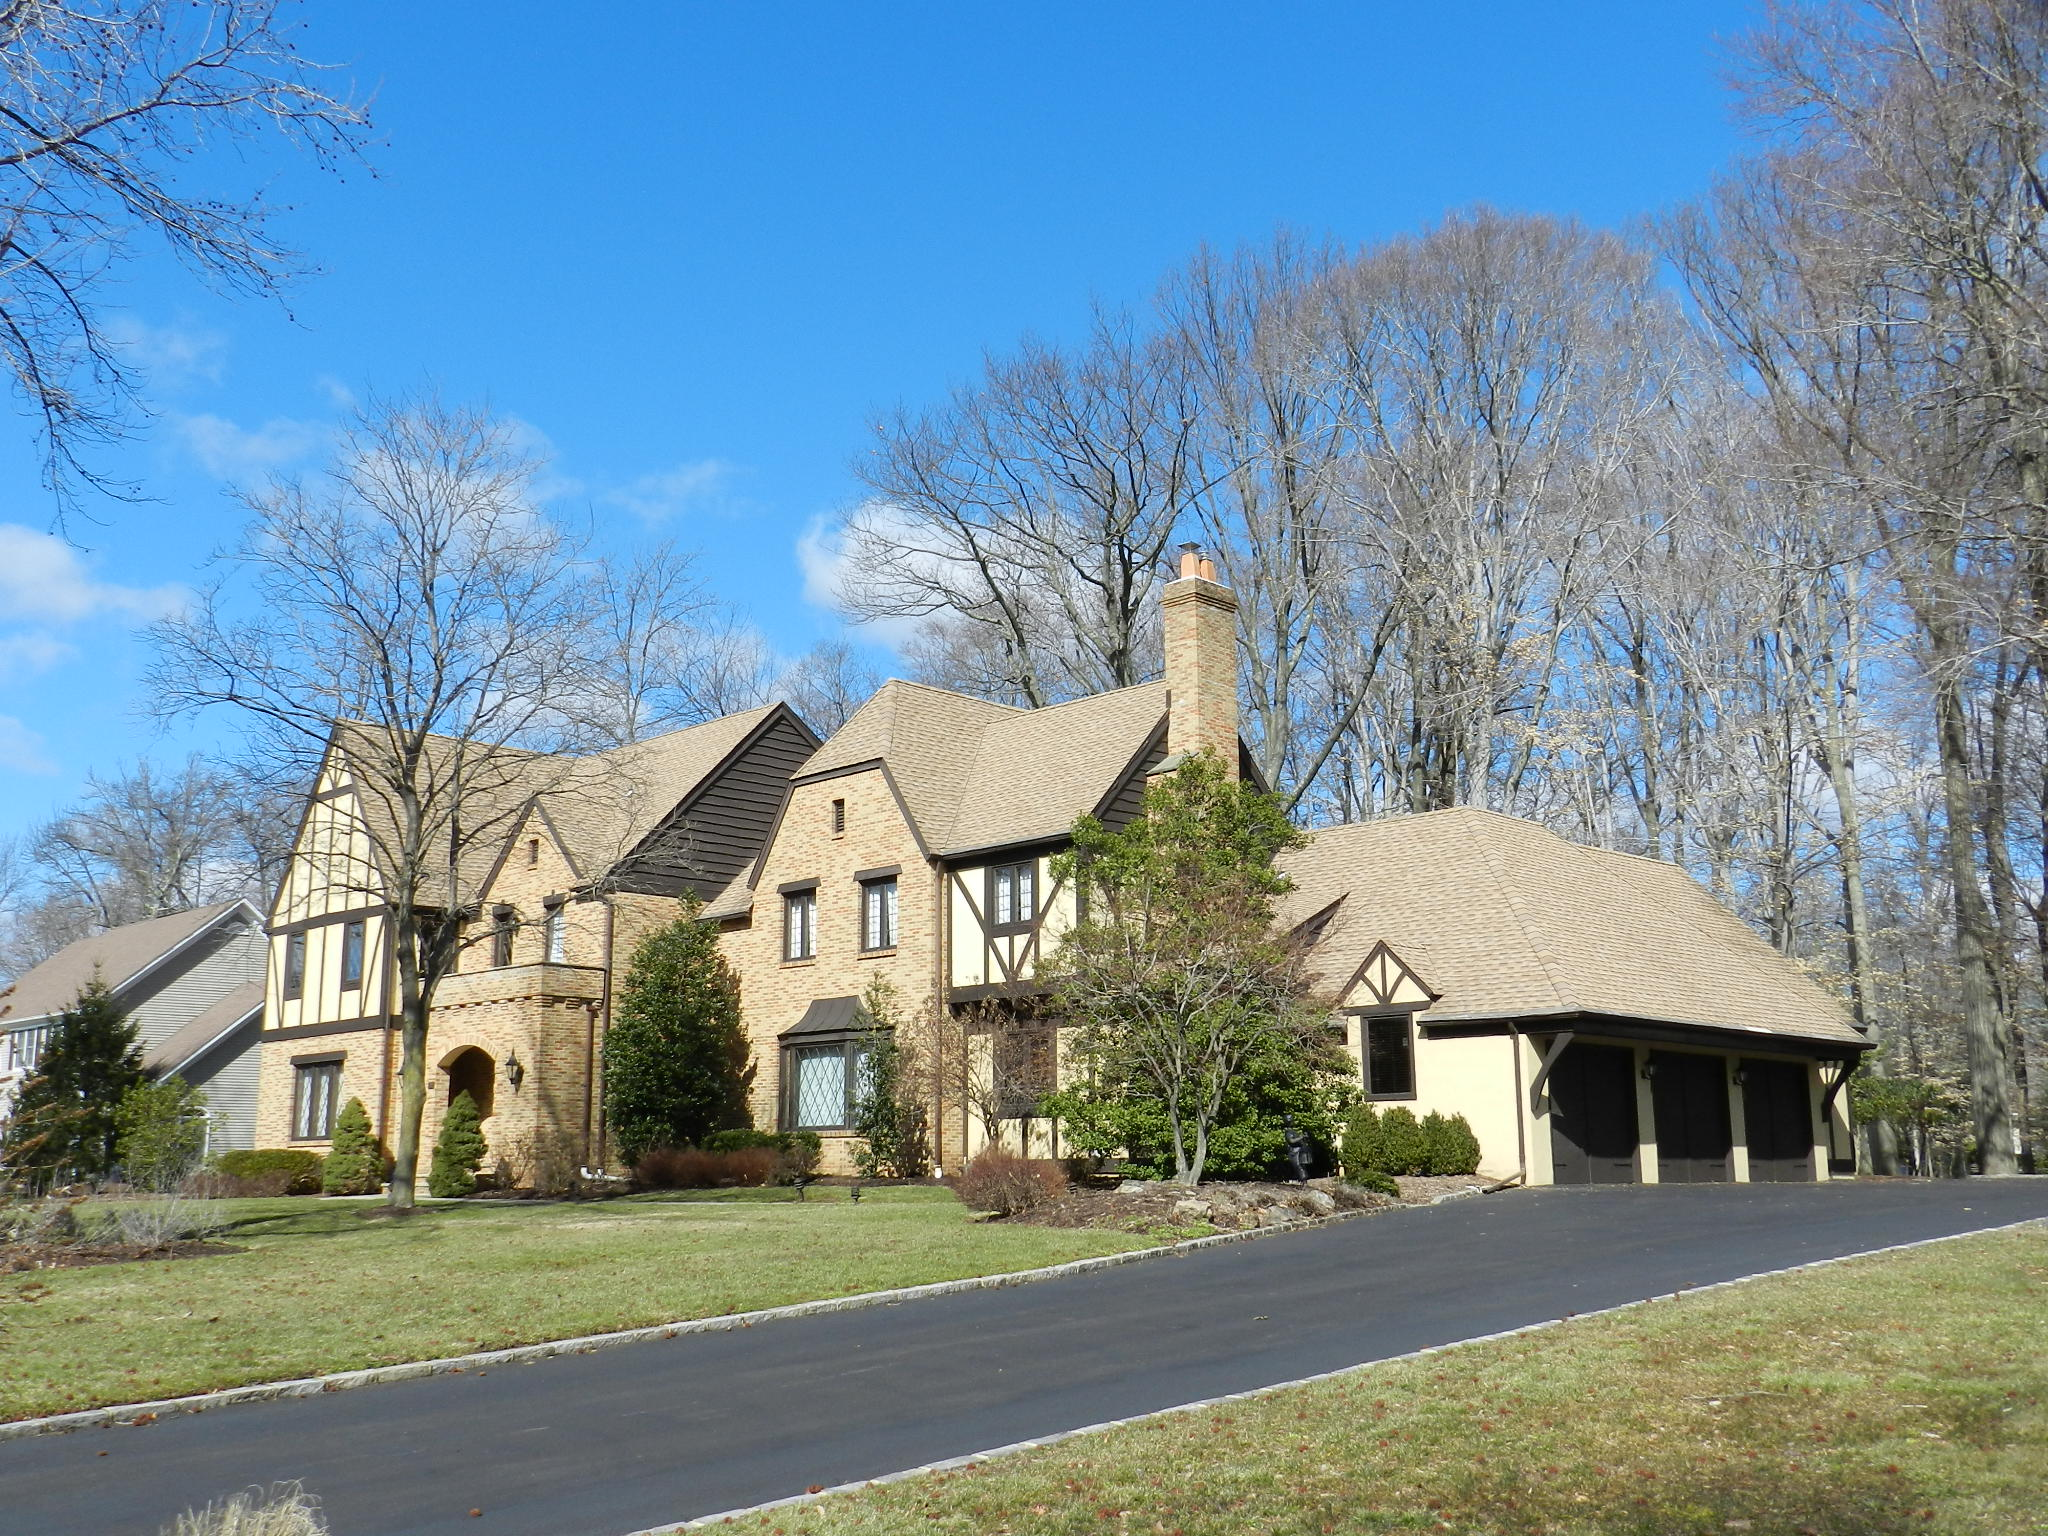 Single Family Home for Sale at Grand in Scale, Comfortable by design 20 Marion Lane Scotch Plains, 07076 United States